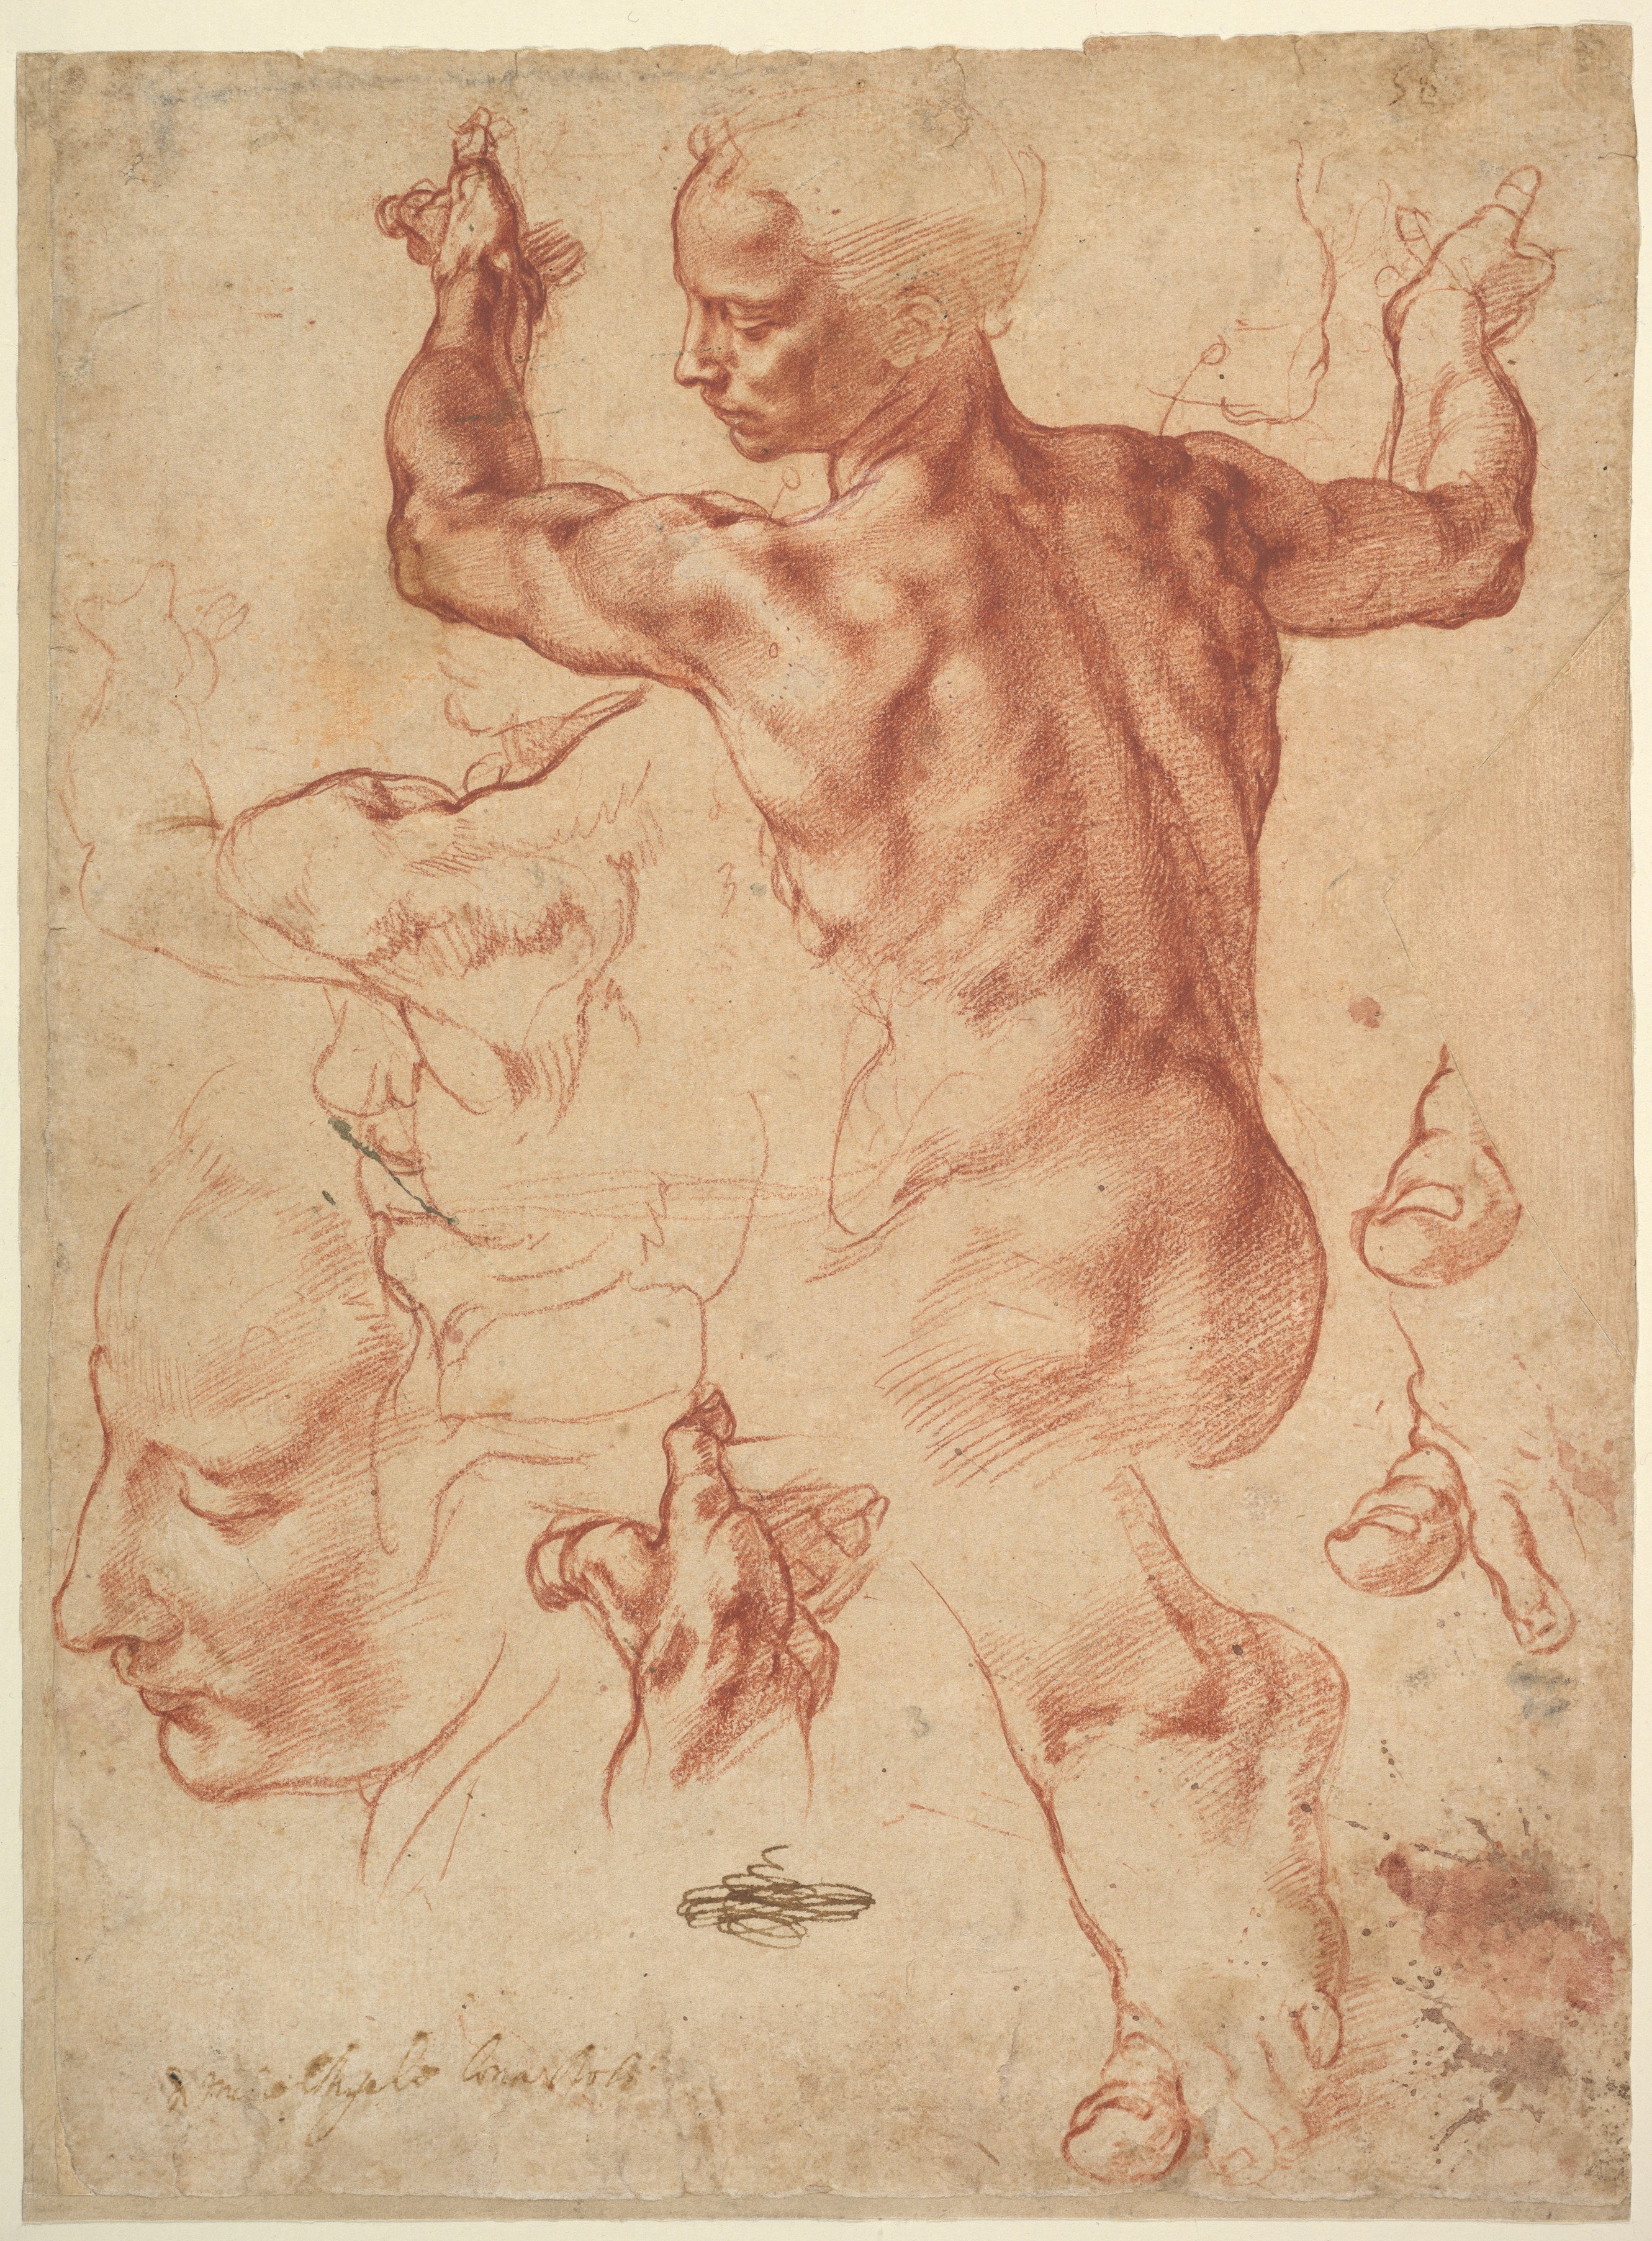 michelangelo and more works of the week honoring 100 years of